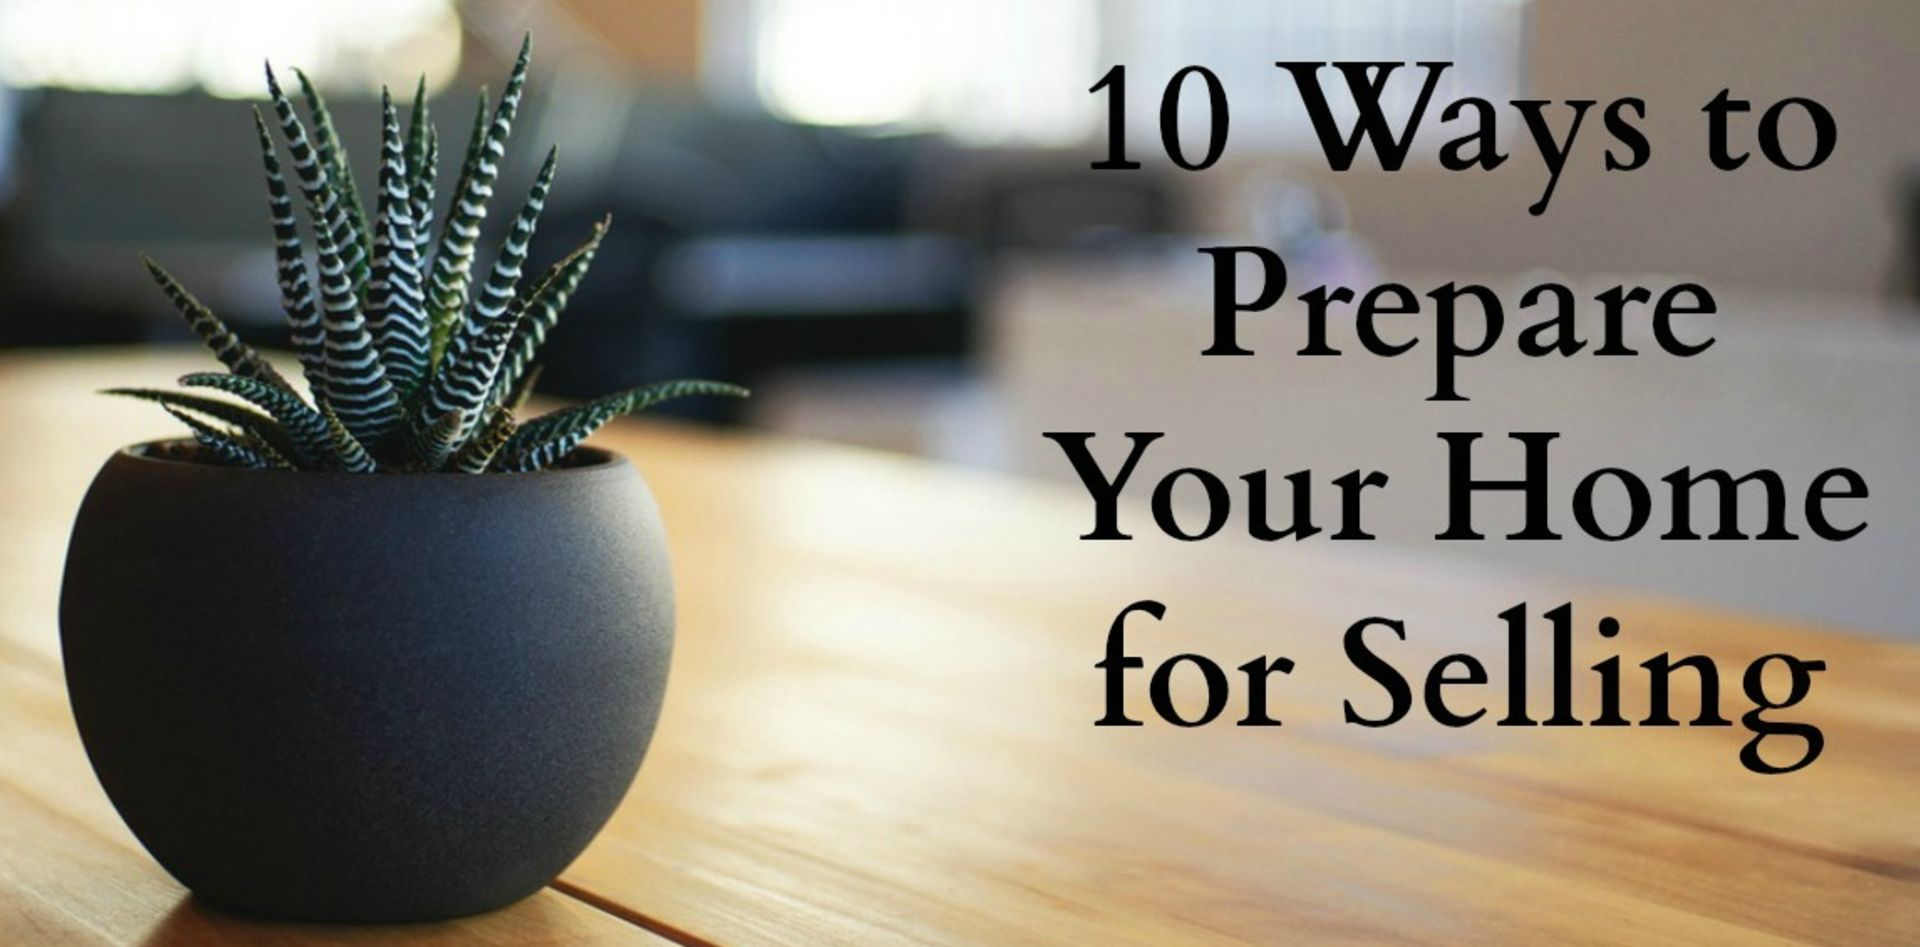 10 Ways to Prepare Your Home for Selling